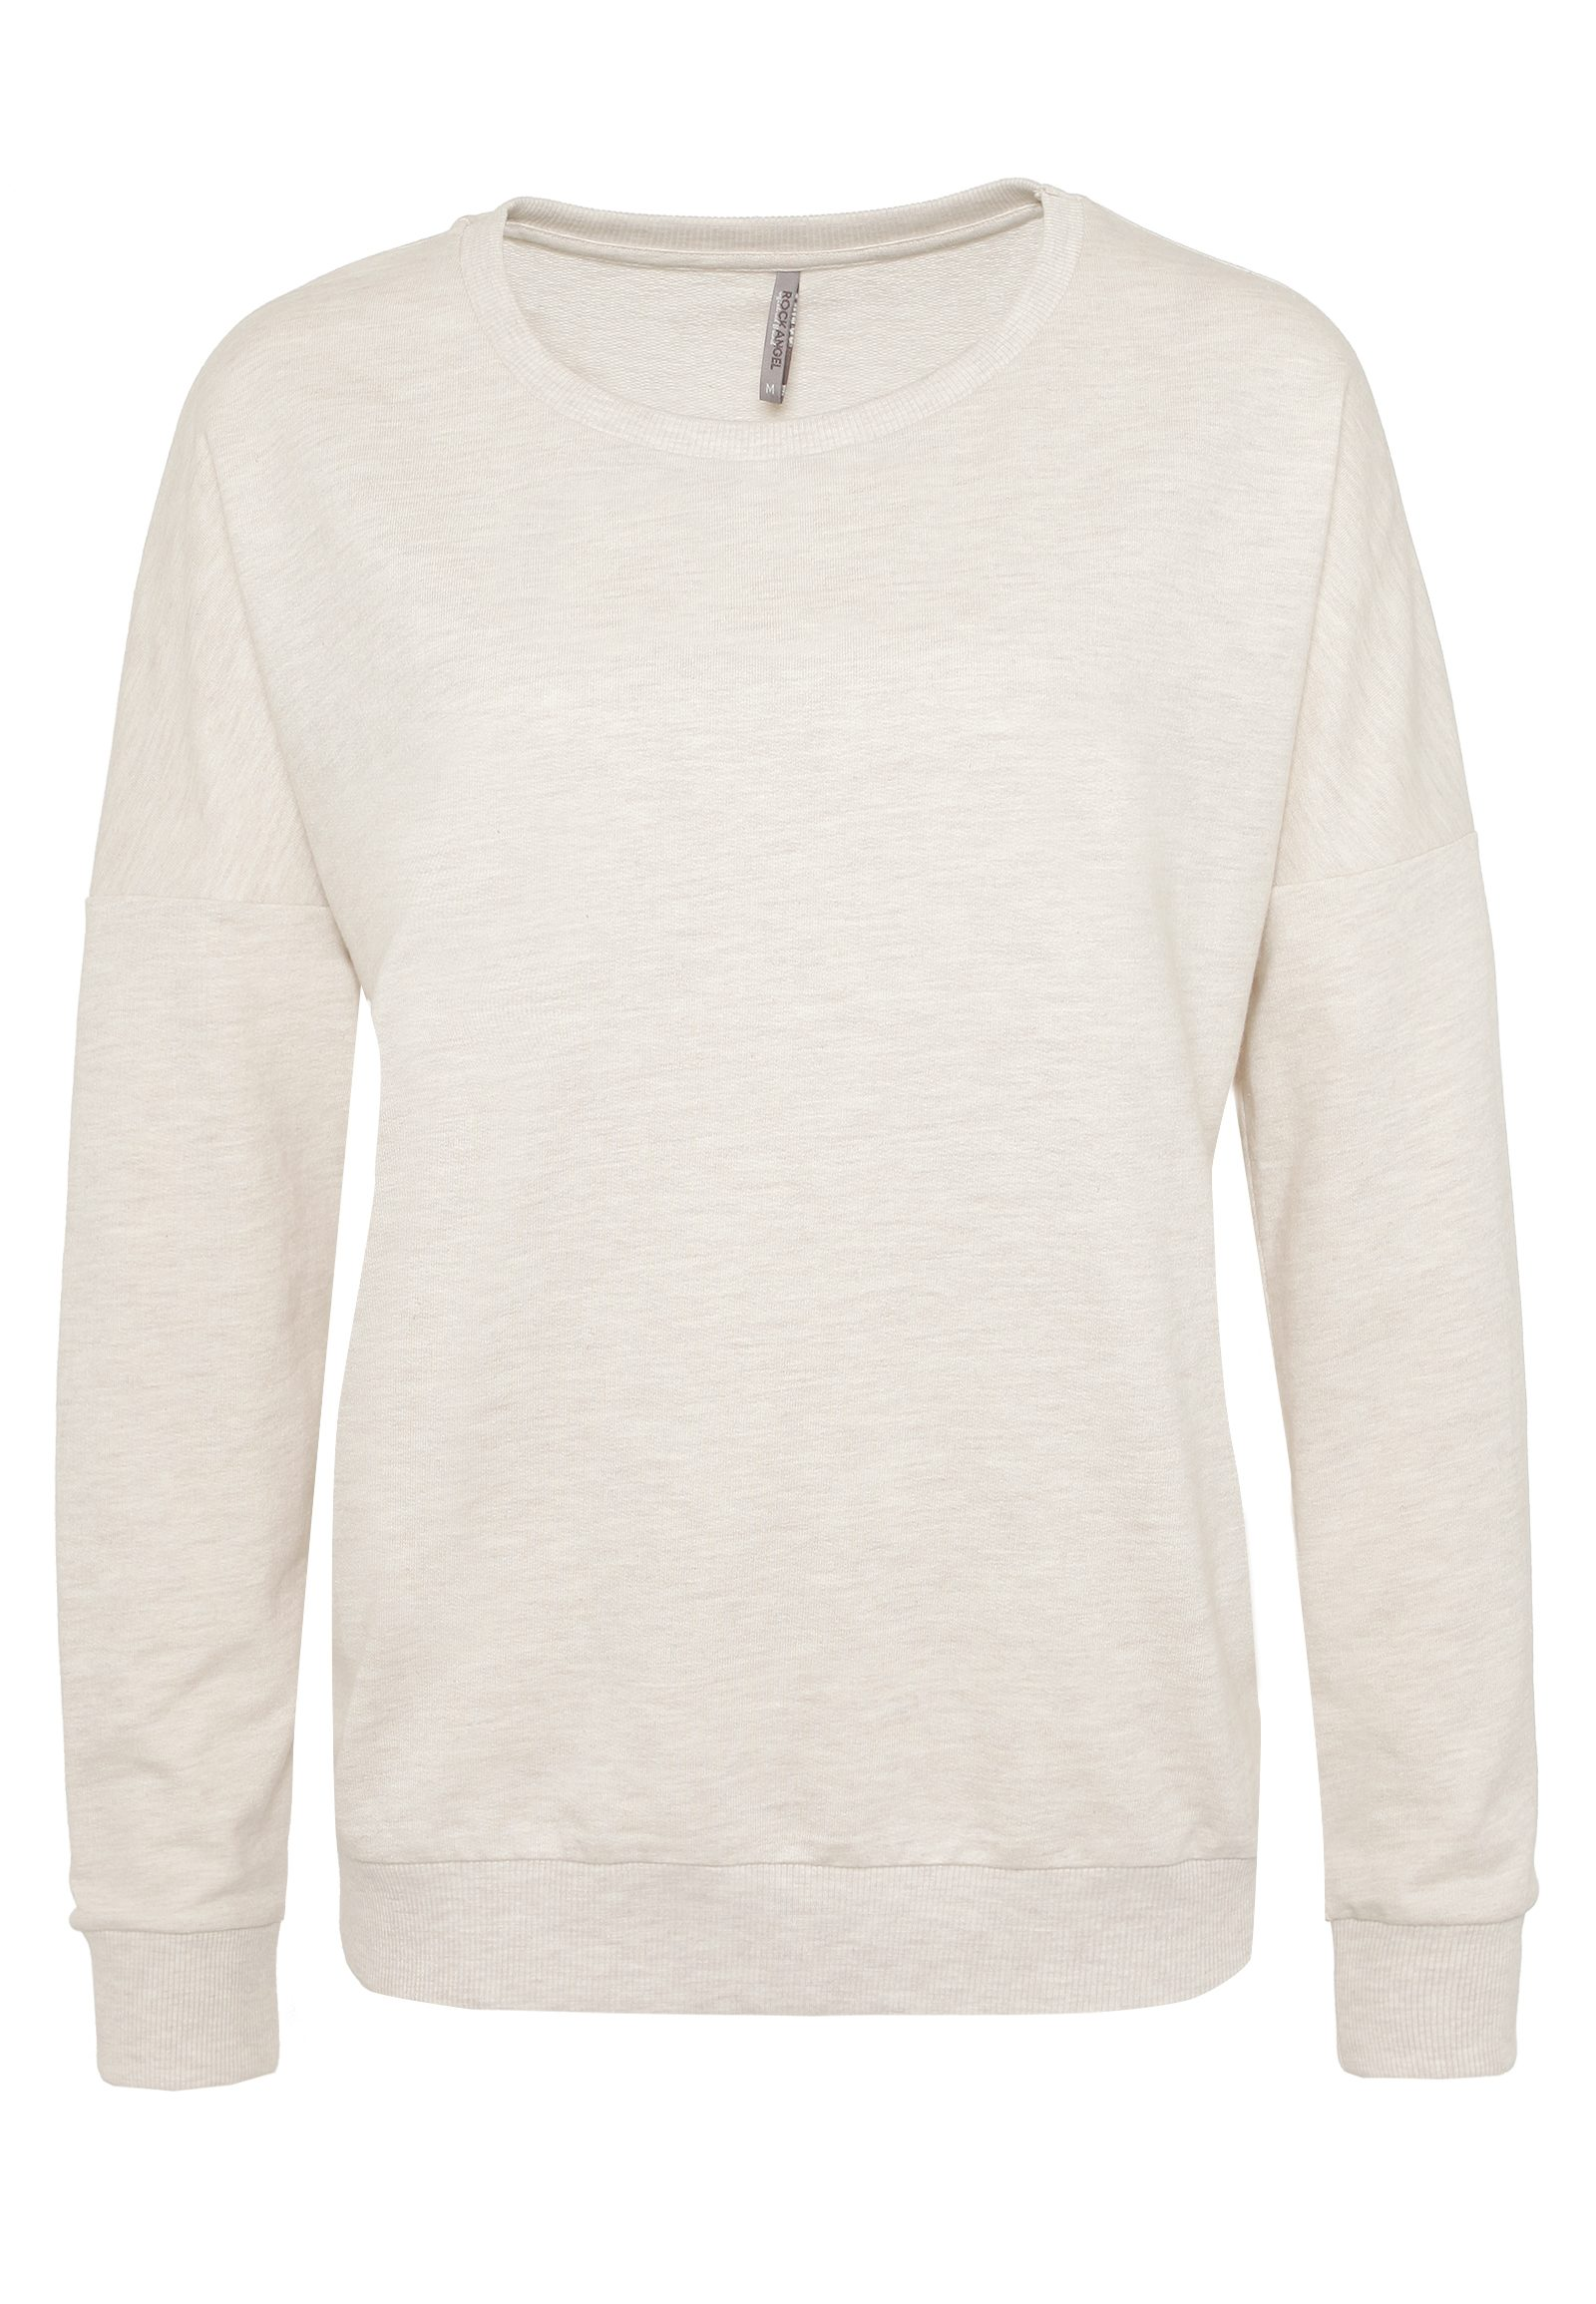 ANGEL Damen Volants Sweatshirt MAILIN beige | 04058427410625